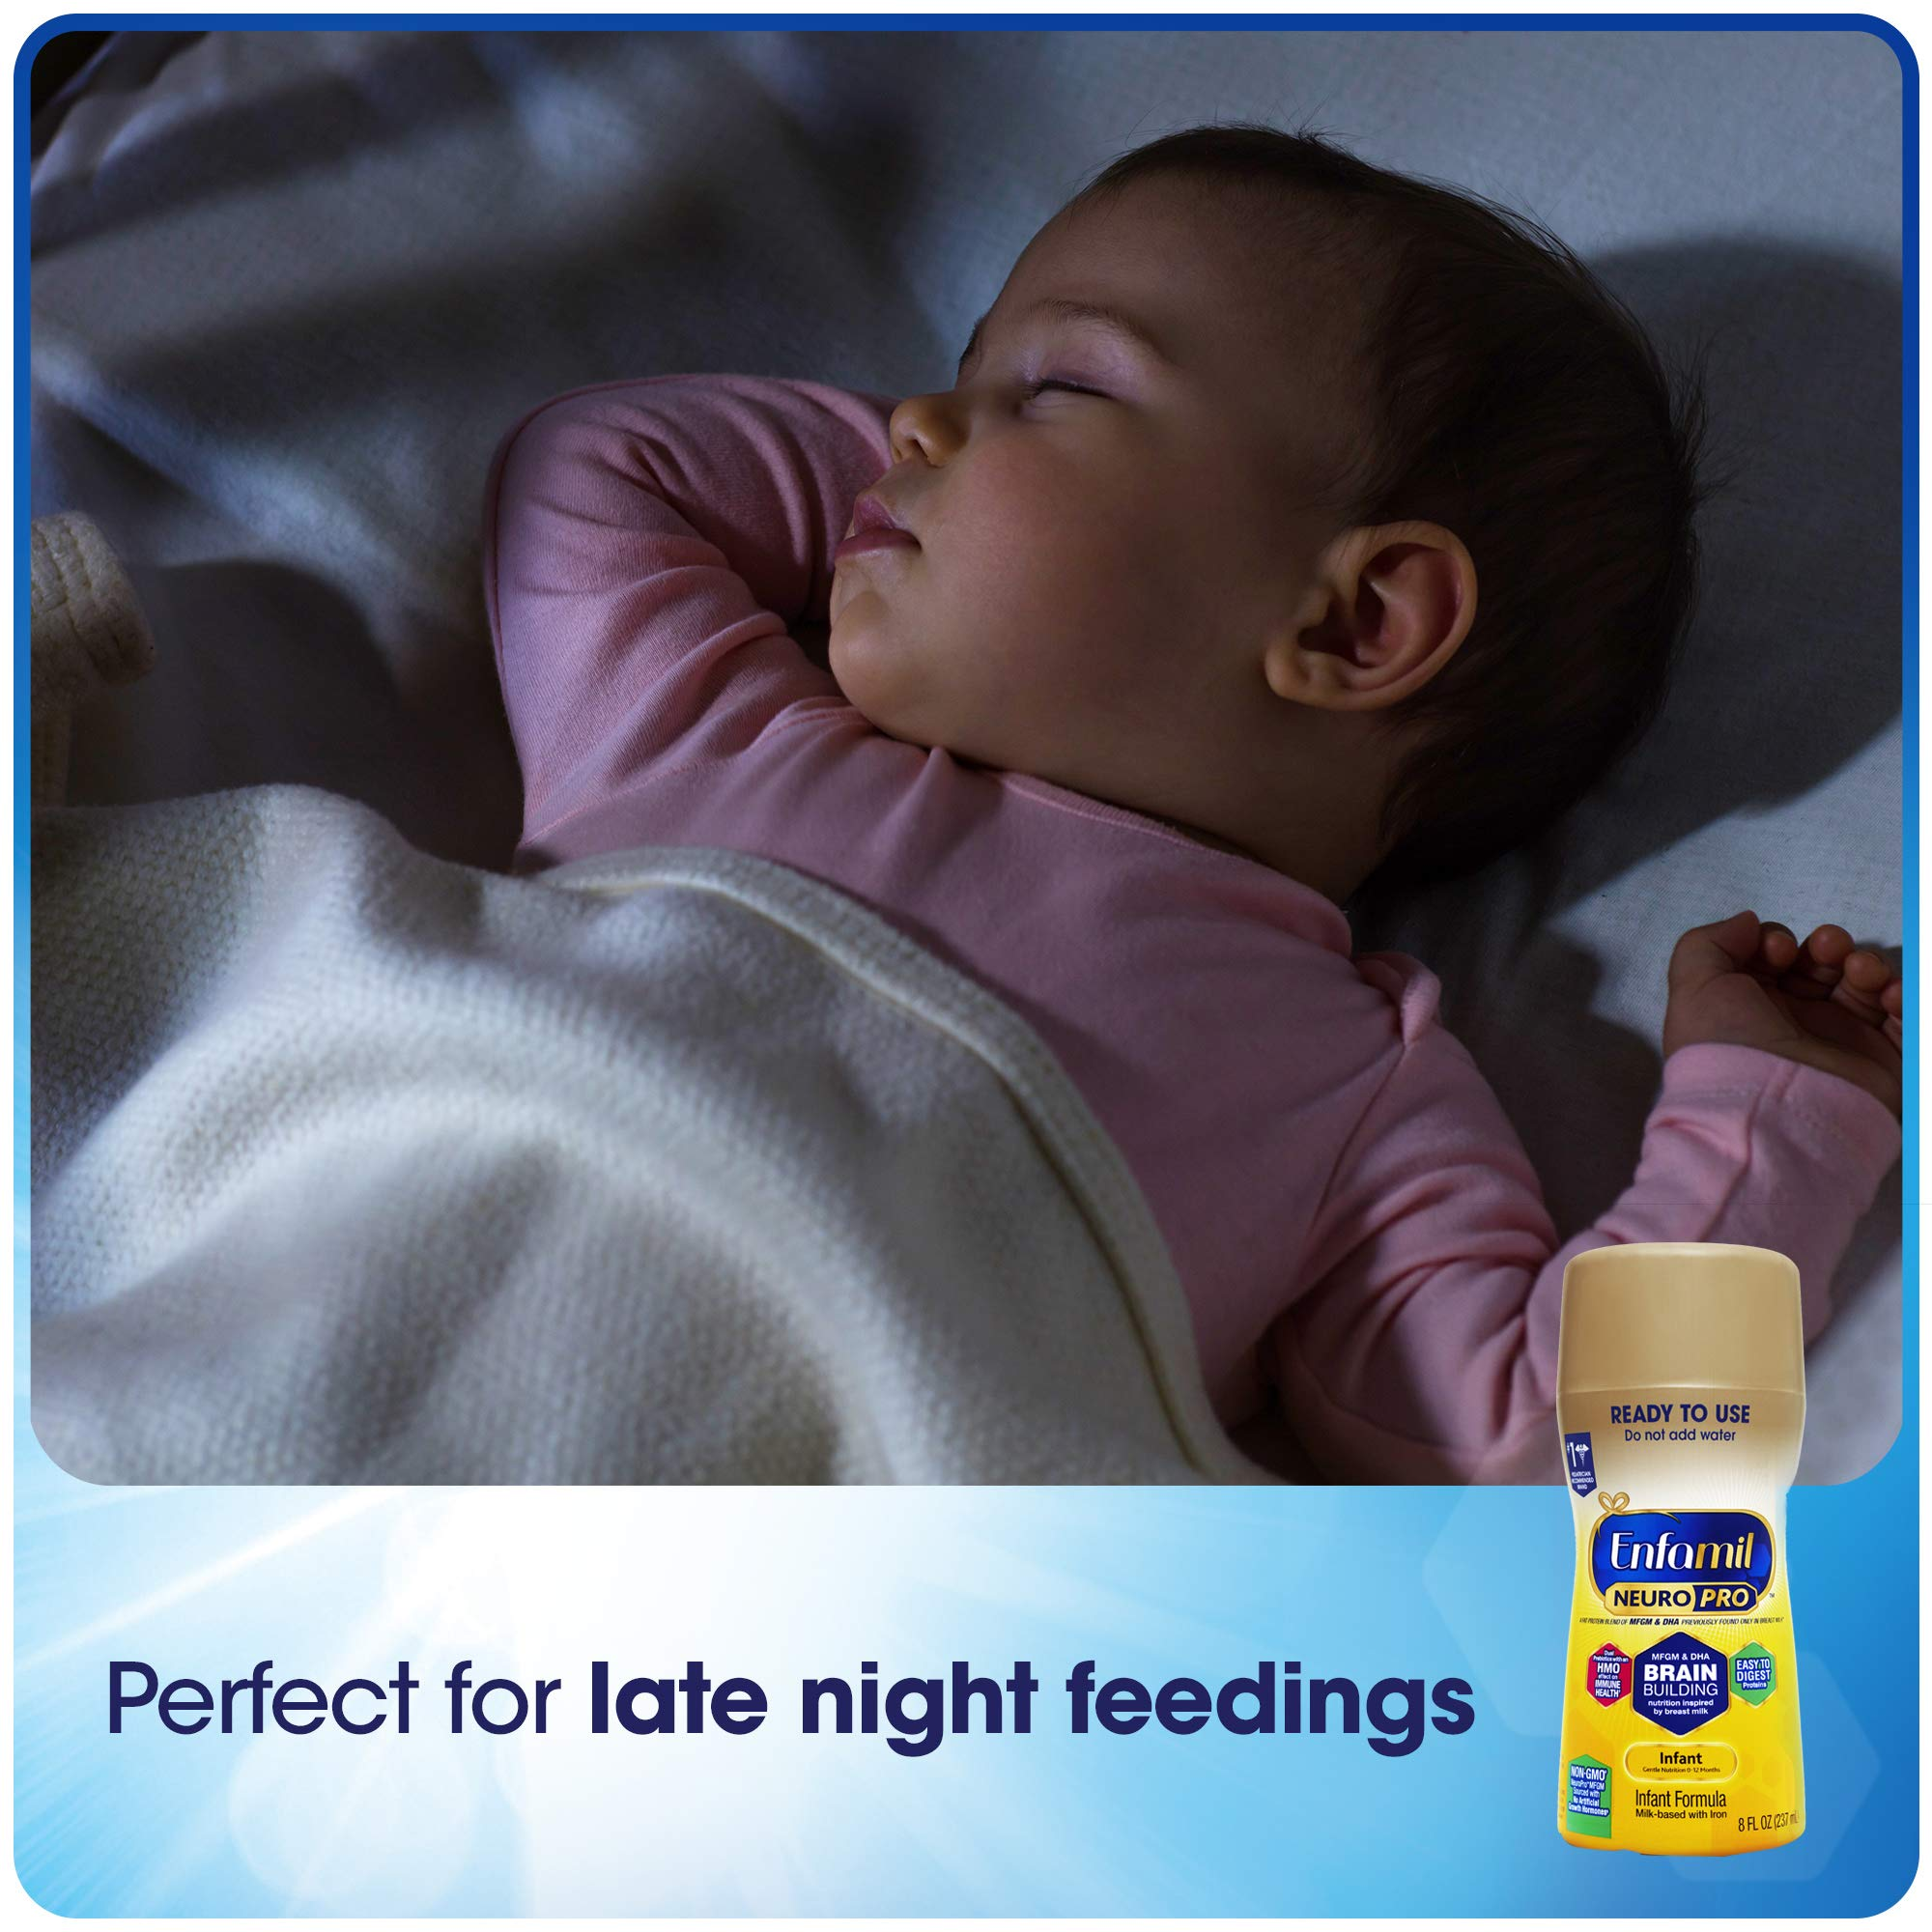 Enfamil NeuroPro Baby Formula Milk Powder, 20.7 Ounce (Pack of 6), Omega 3, Probiotics, Brain Support and Infant Formula - Ready to Use Liquid, 8 fl oz (24 count) Packaging May Vary by Enfamil (Image #8)